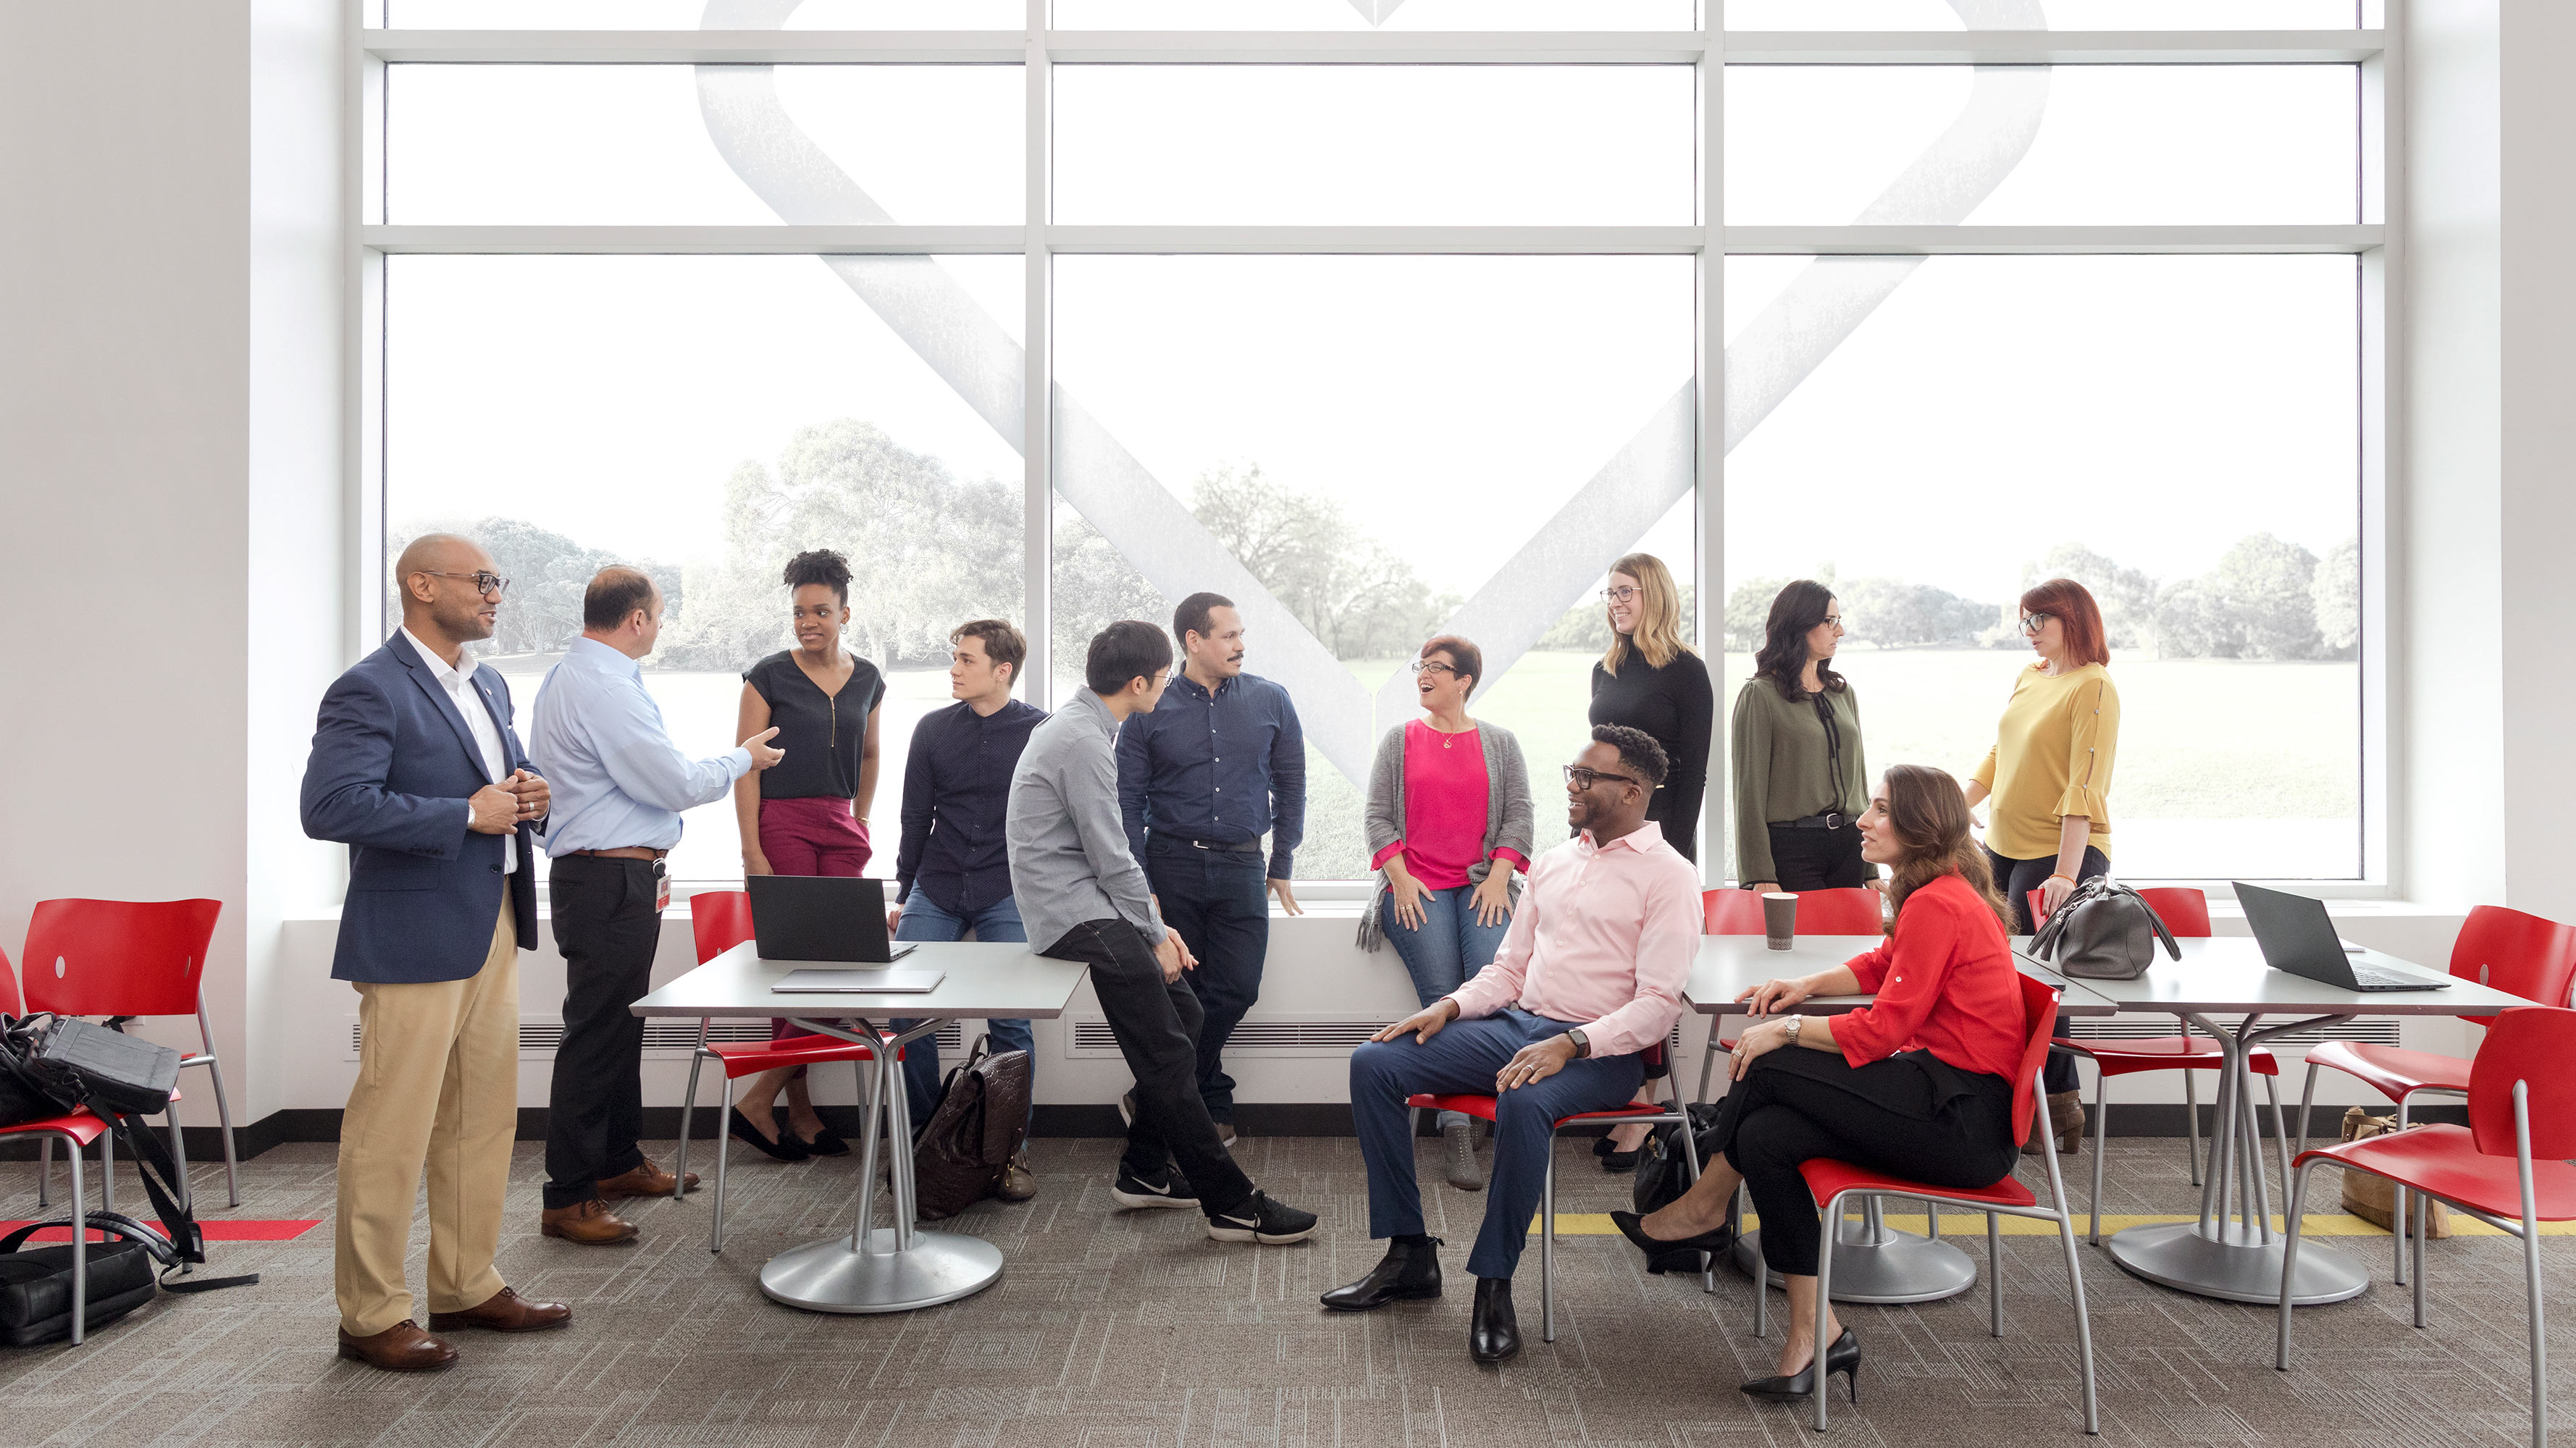 A dozen CVS Health employees, all from different backgrounds and jobs, gather in the cafeteria at the company's headquarters in Woonsocket, Rhode Island.